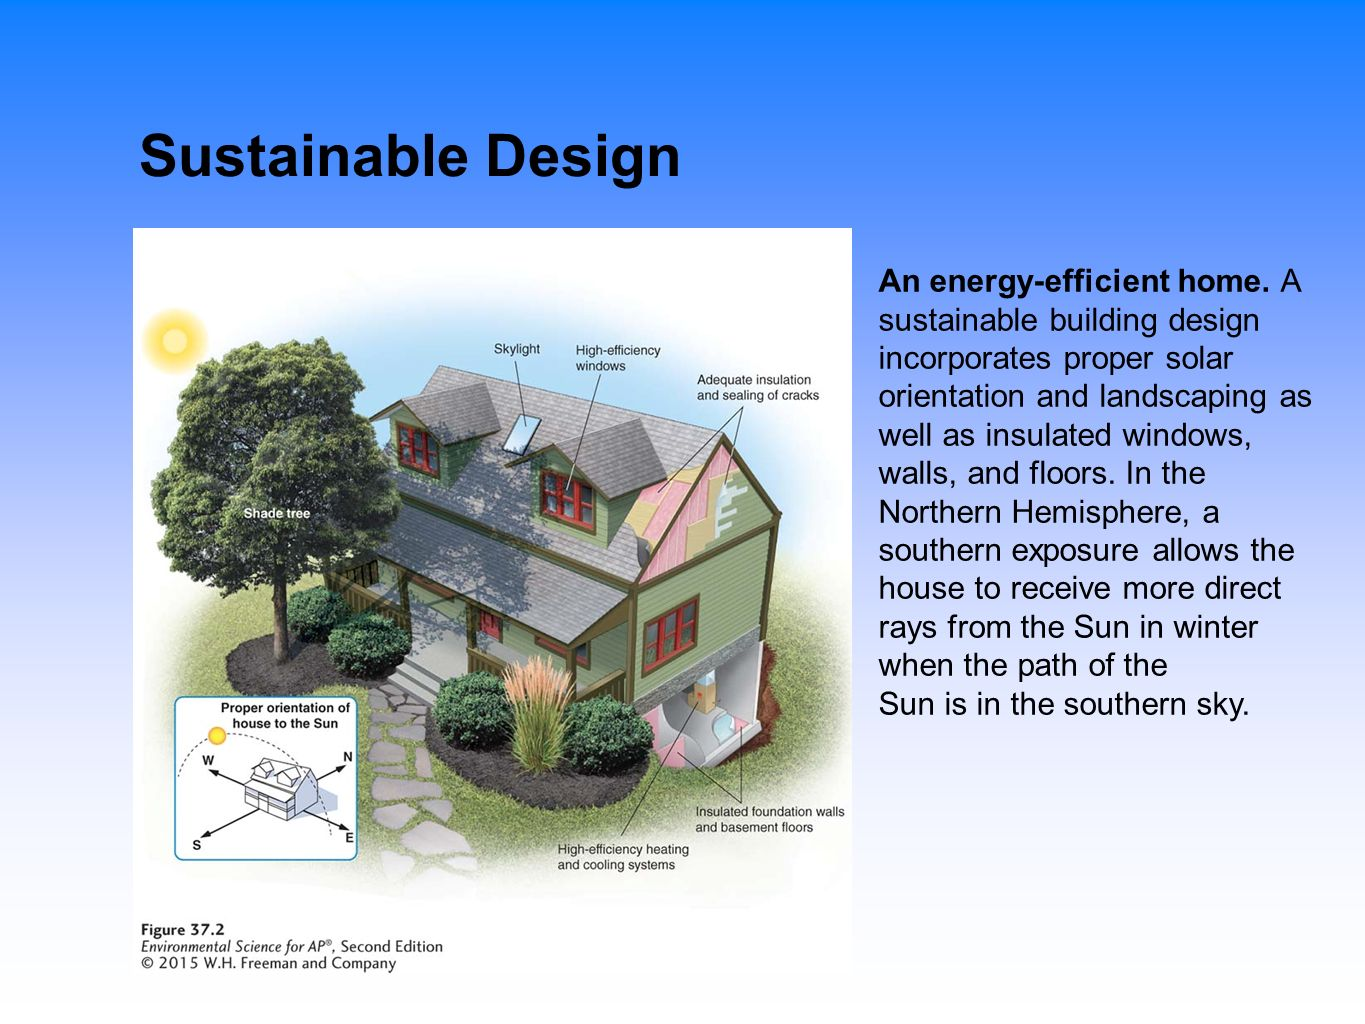 Achieving energy sustainability ppt video online download - Building orientation to optimize sun exposure ...